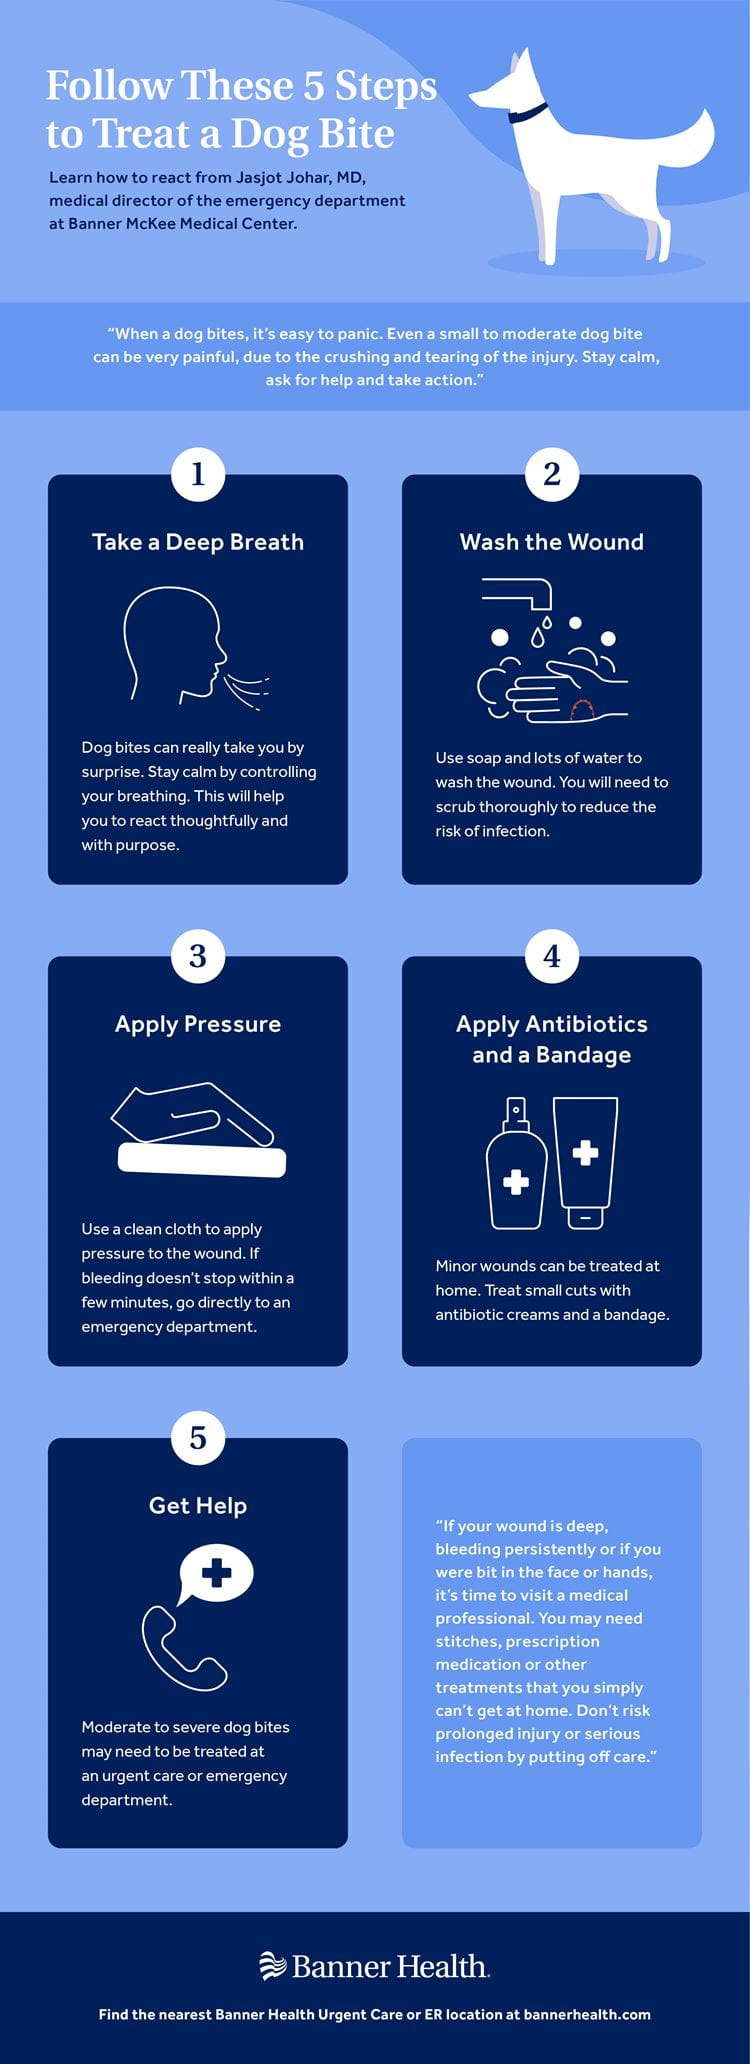 5 Steps to Treat a Dog Bite Infographic